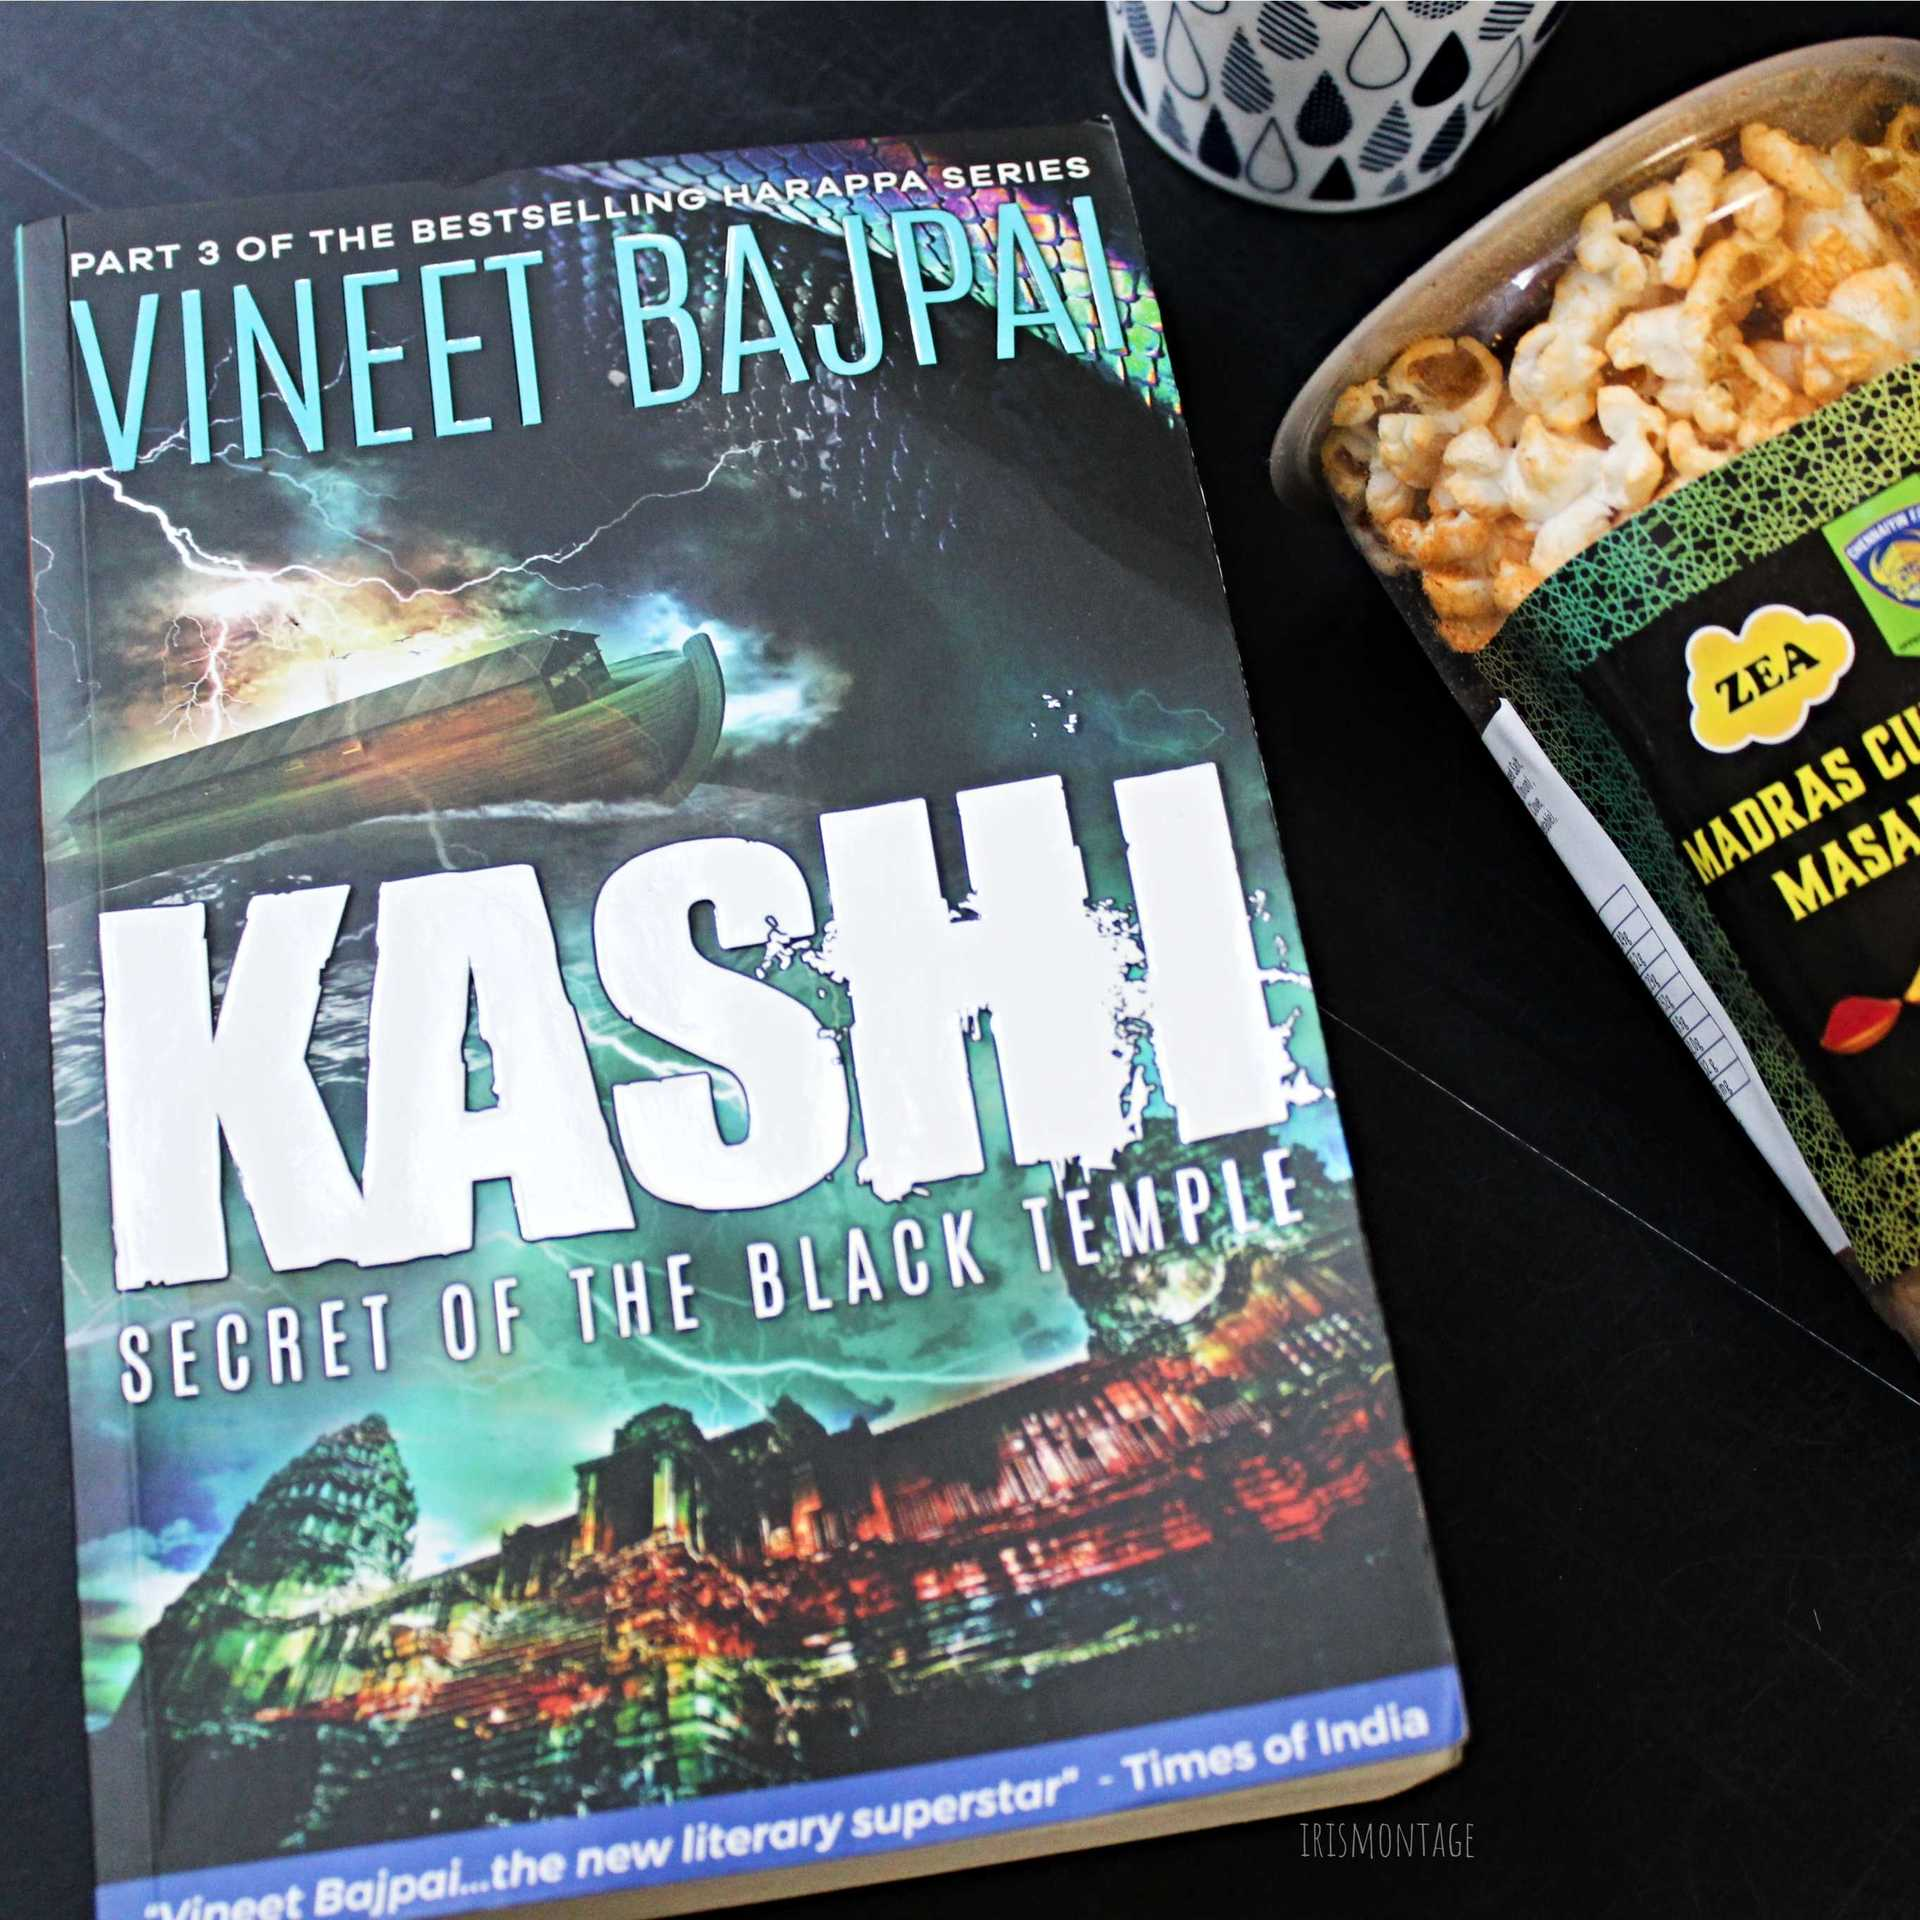 Kashi, Secret of the Black Temple by Vineet Bajpai image